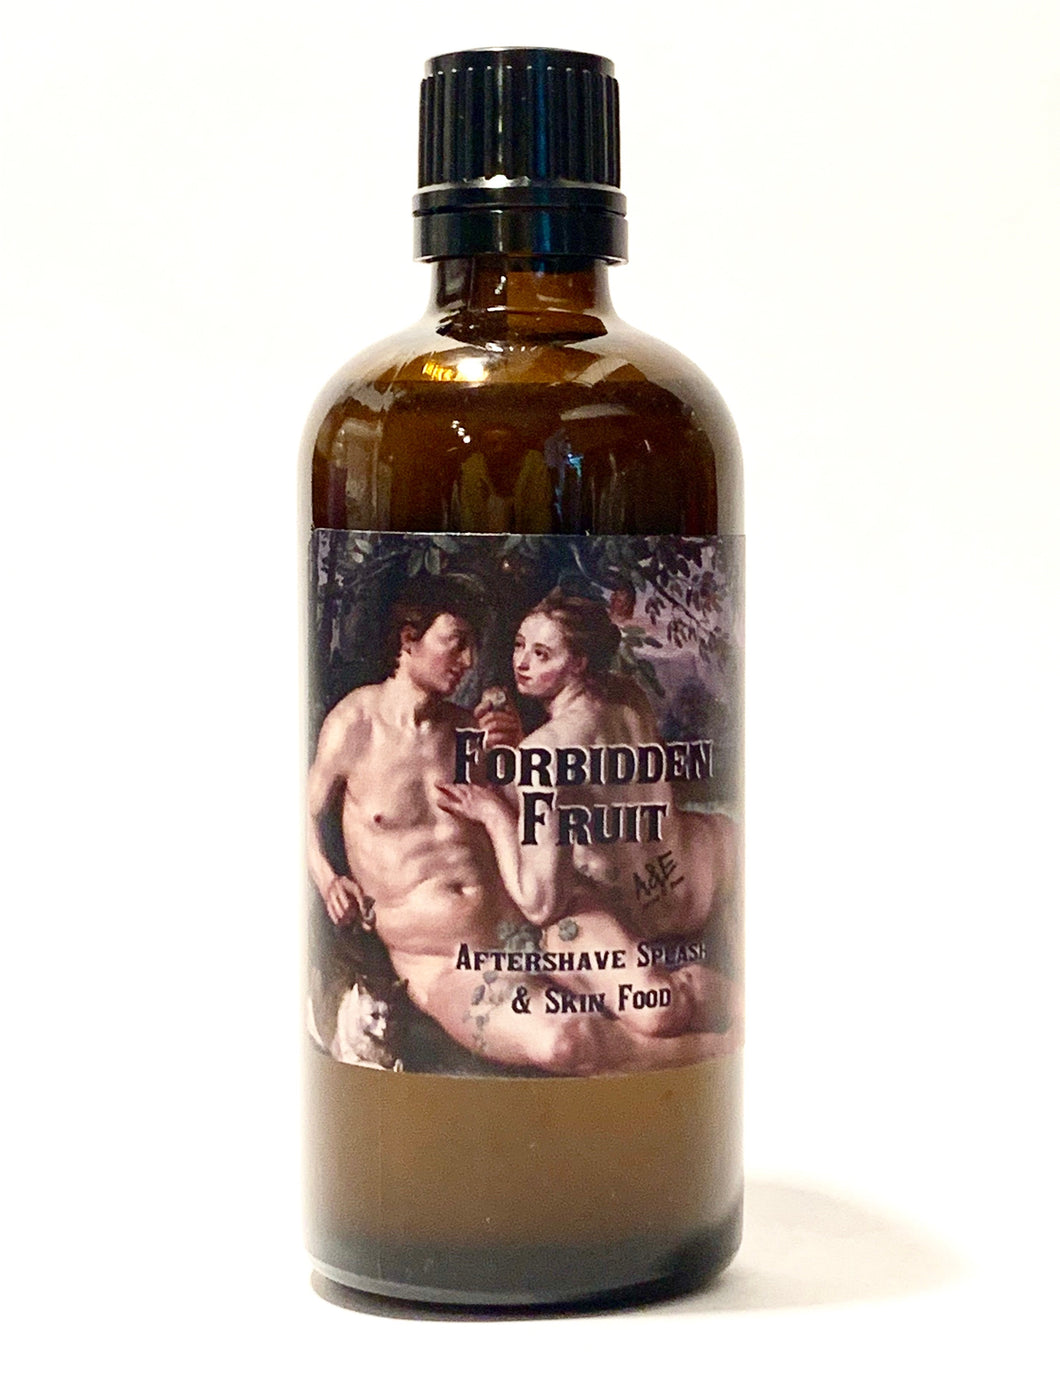 Forbidden Fruit Shaving Aftershave Splash & Skin Food